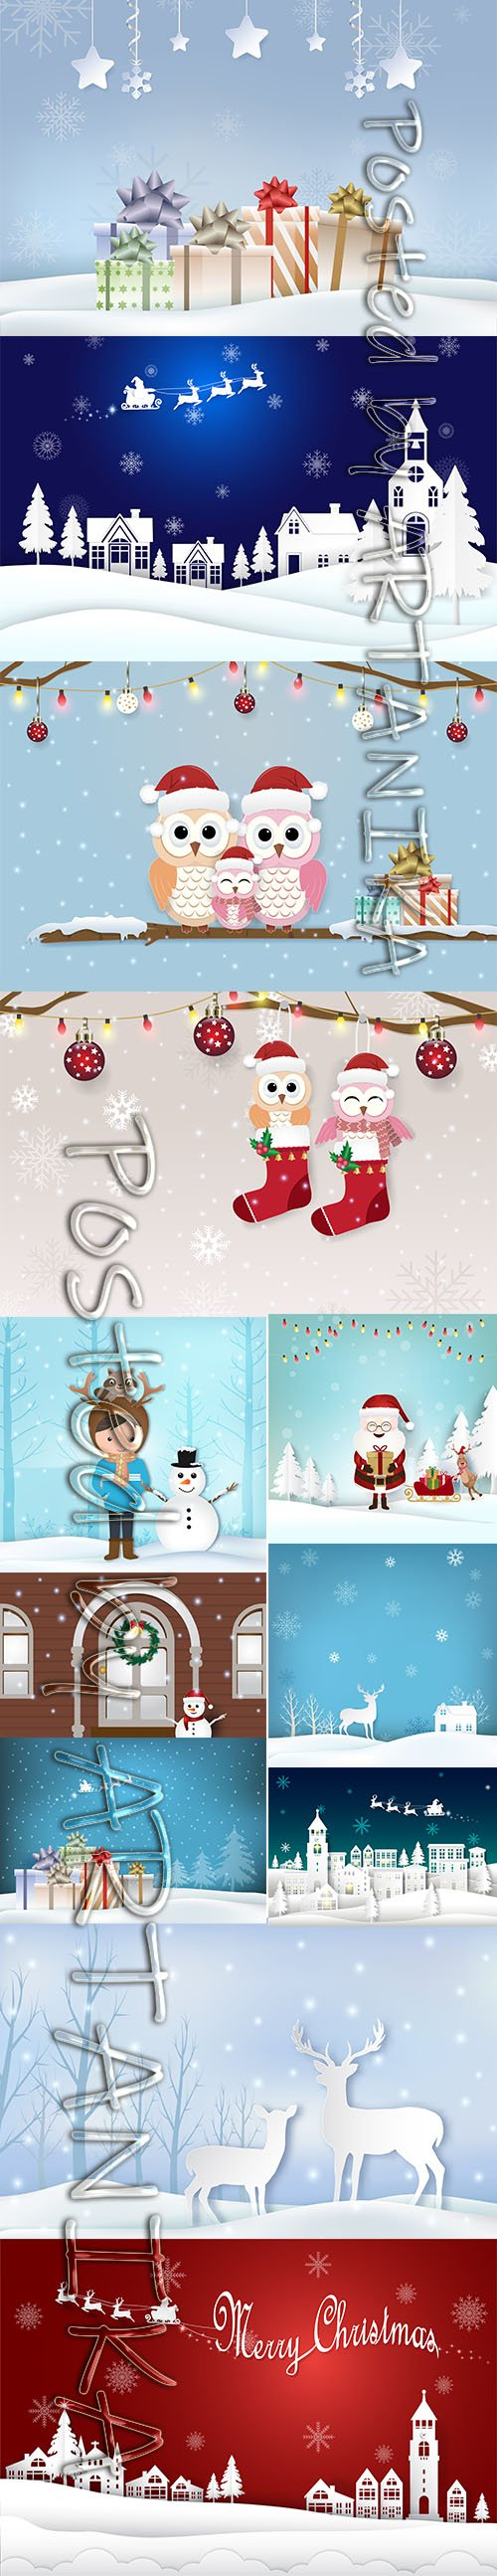 Winter Holiday City Illustration and Santas Gifts Backgrounds